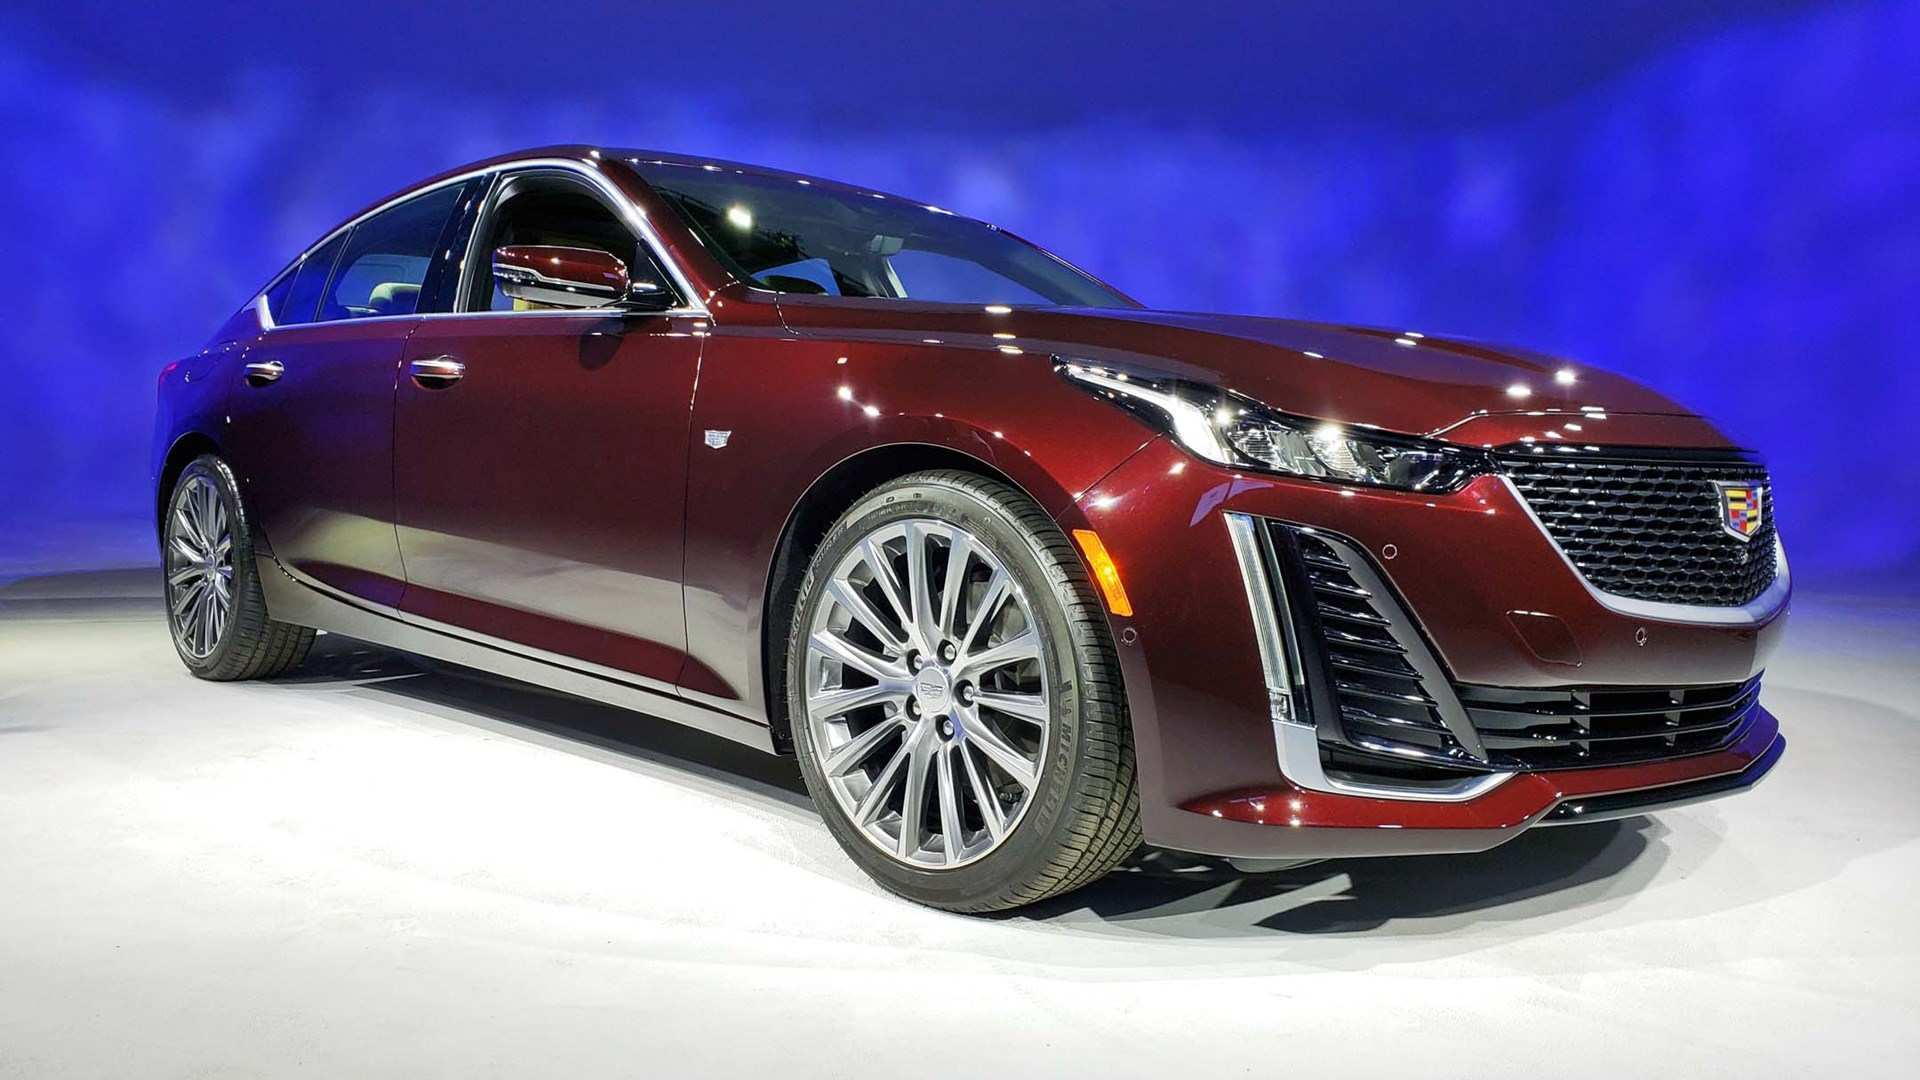 31 Best Photos Of 2020 Cadillac Ct5 Release Date